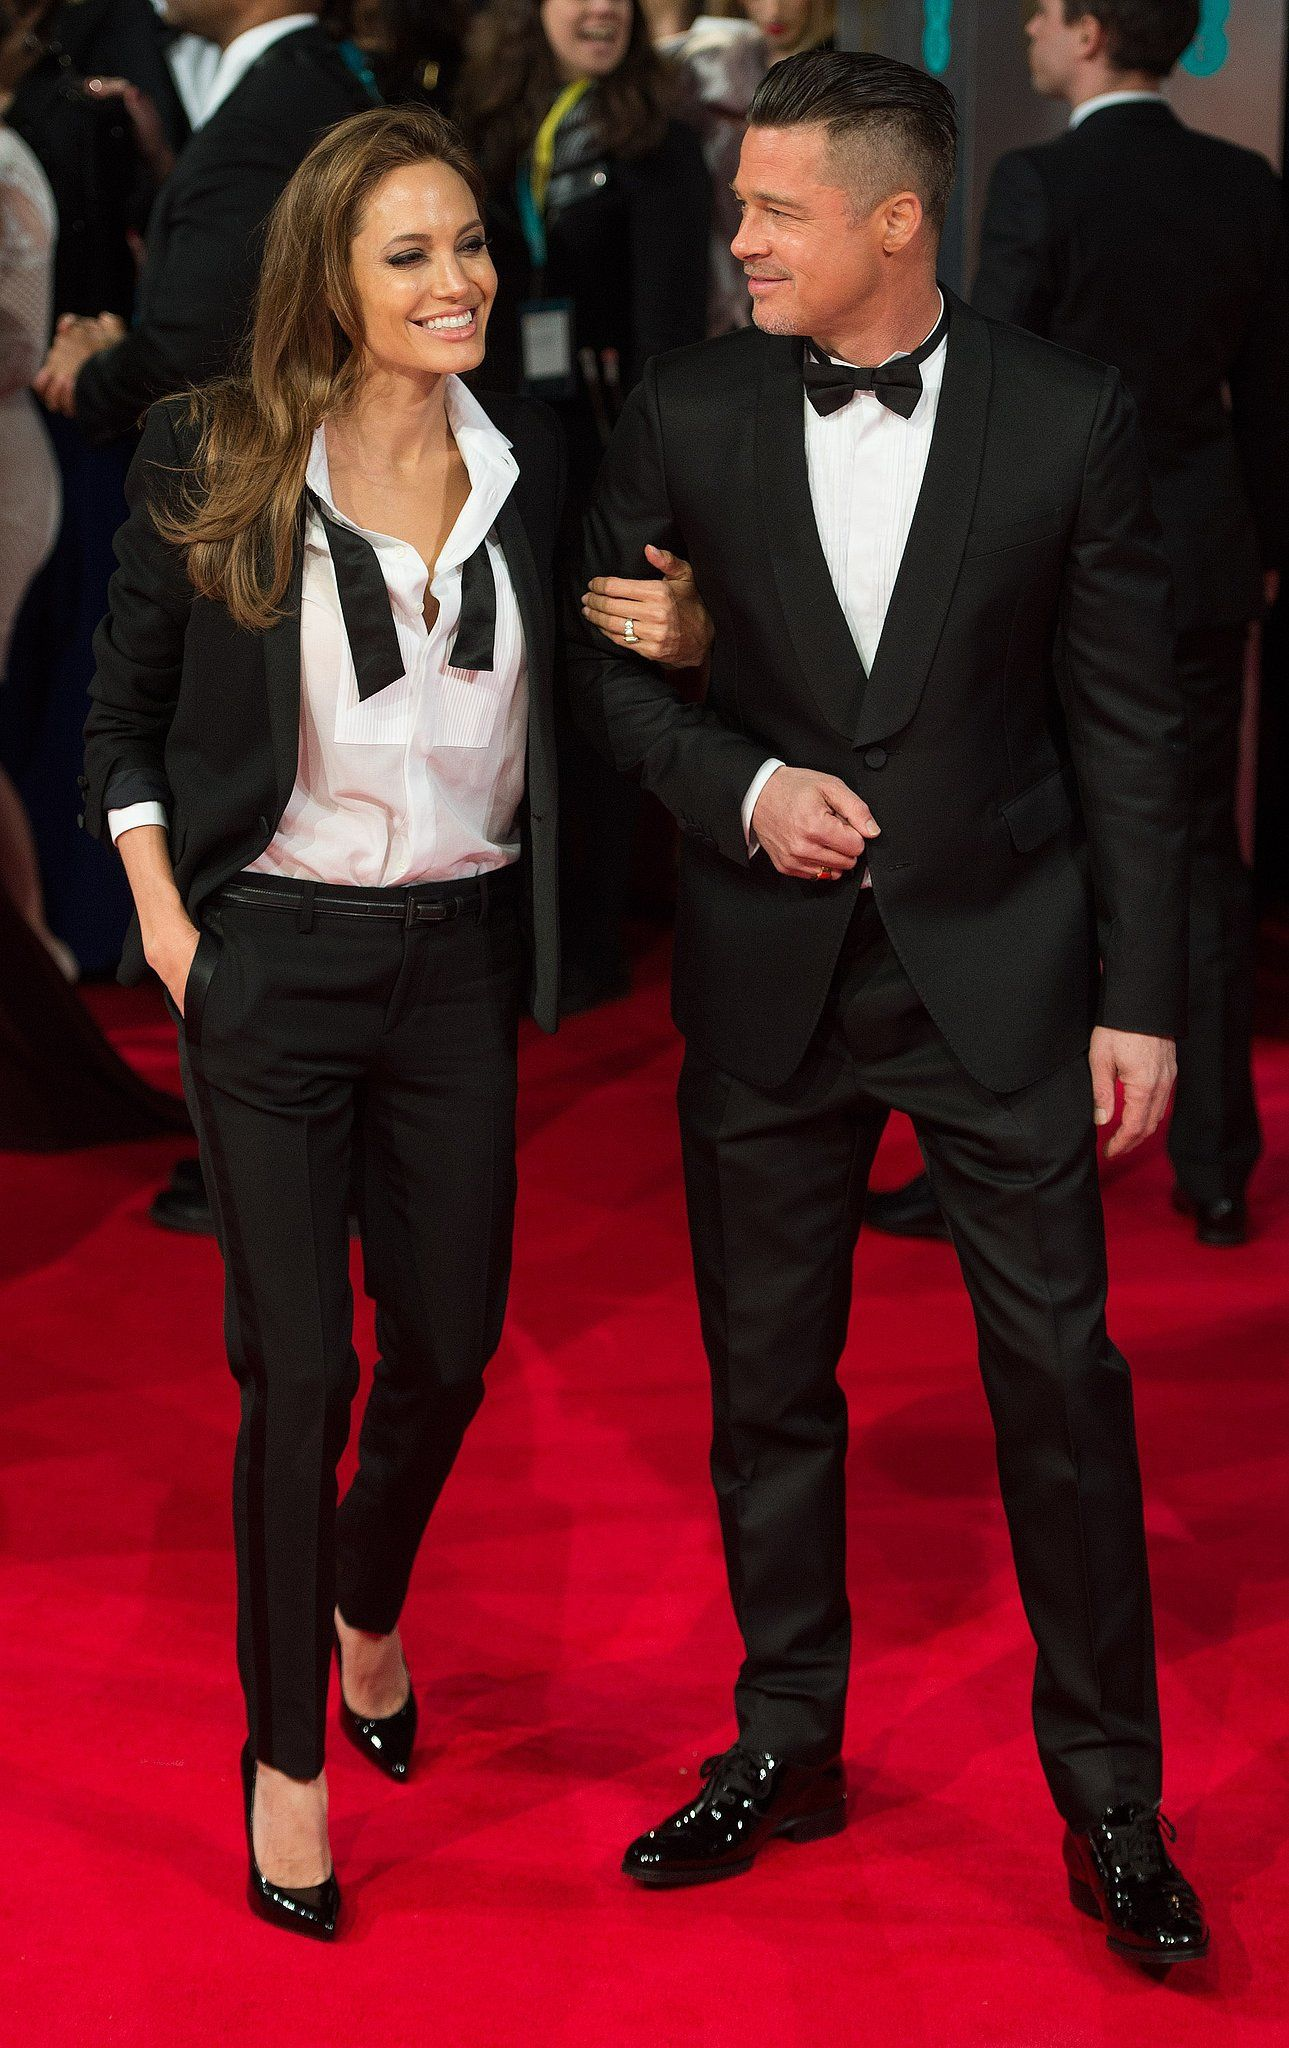 30 Best Cute Celebrity Couples images | Female actresses ...